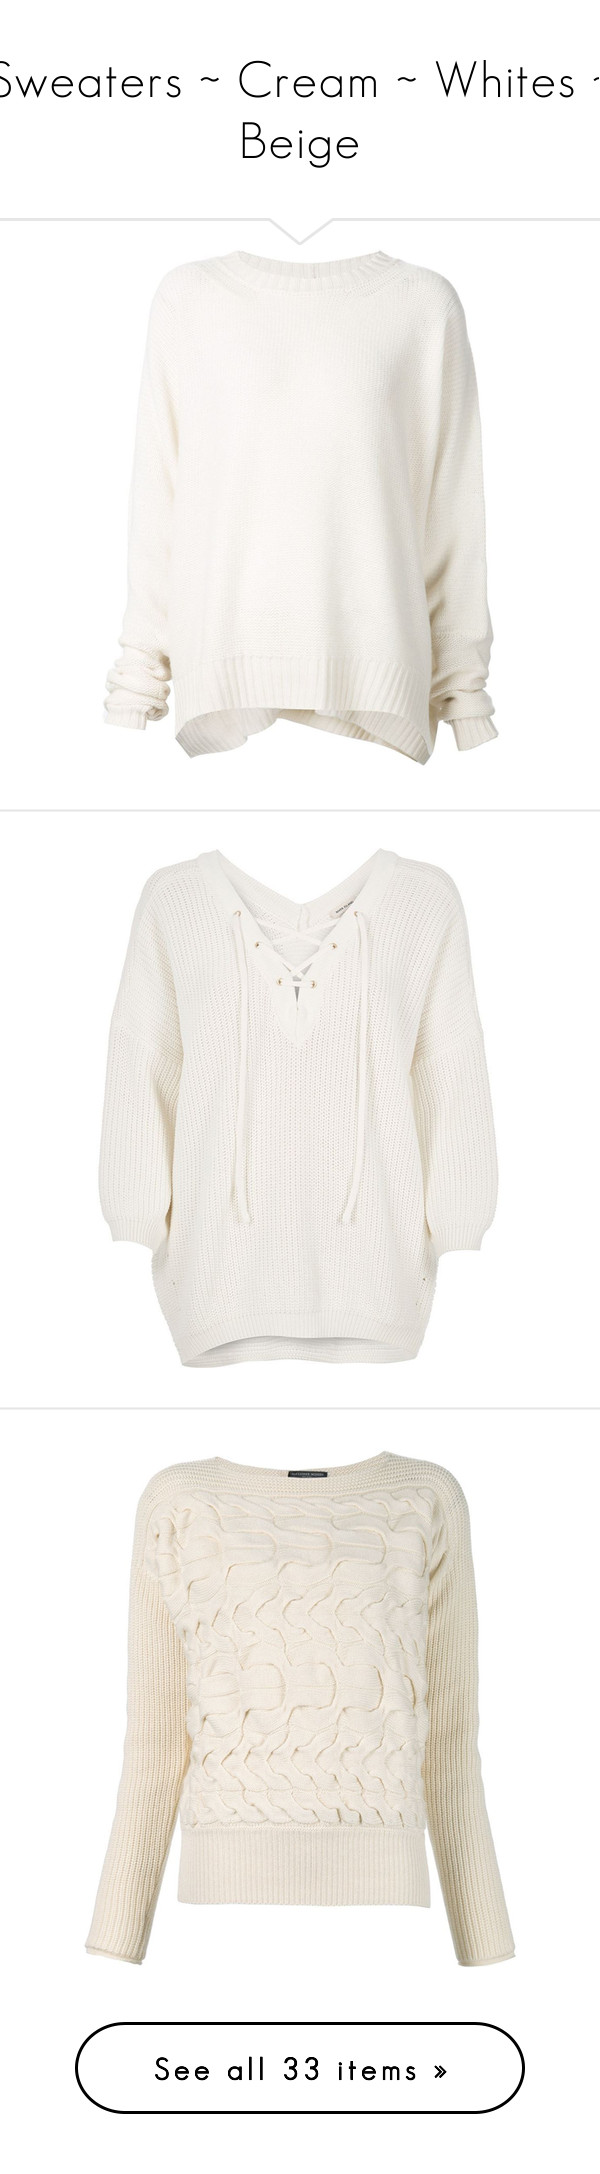 """""""Sweaters ~ Cream ~ Whites ~ Beige"""" by idocoffee ❤ liked on Polyvore featuring tops, sweaters, shirts, jumpers, white, over sized sweaters, oversized white sweater, oversized white shirt, cashmere jumper and oversized cashmere sweater"""